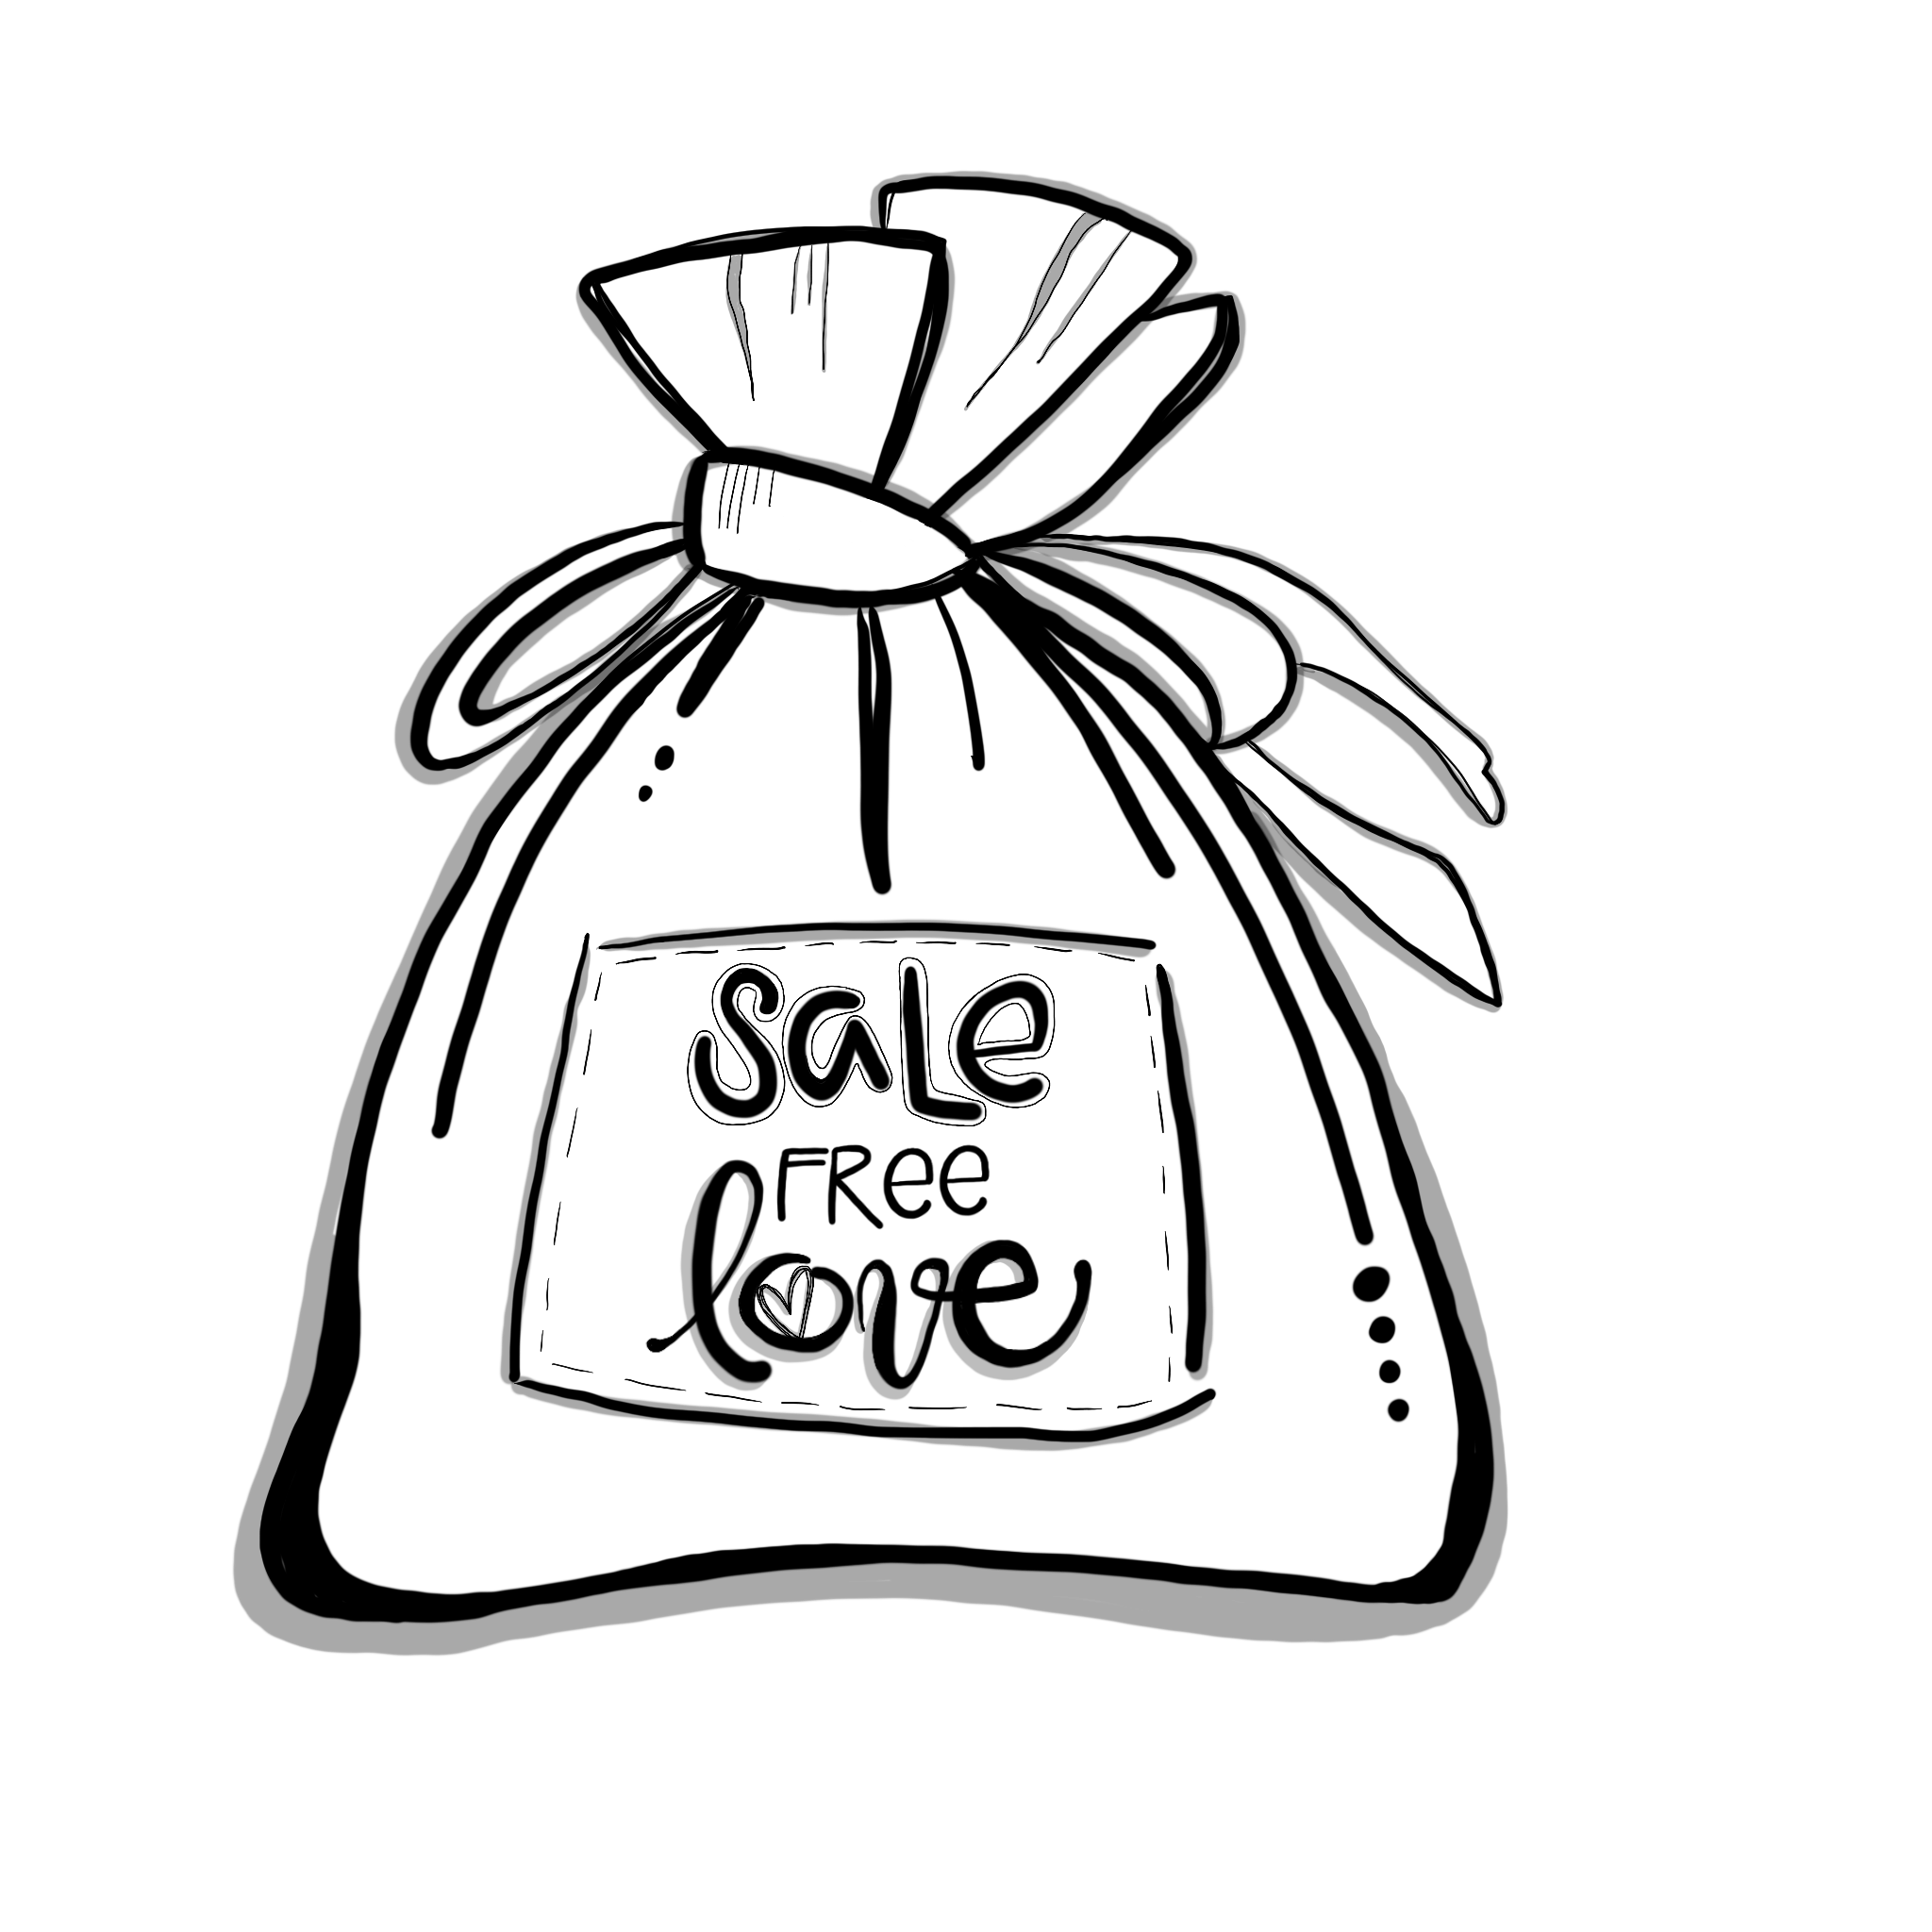 Money doodle png. Free love arthouse doodlefreelovesuecarroll